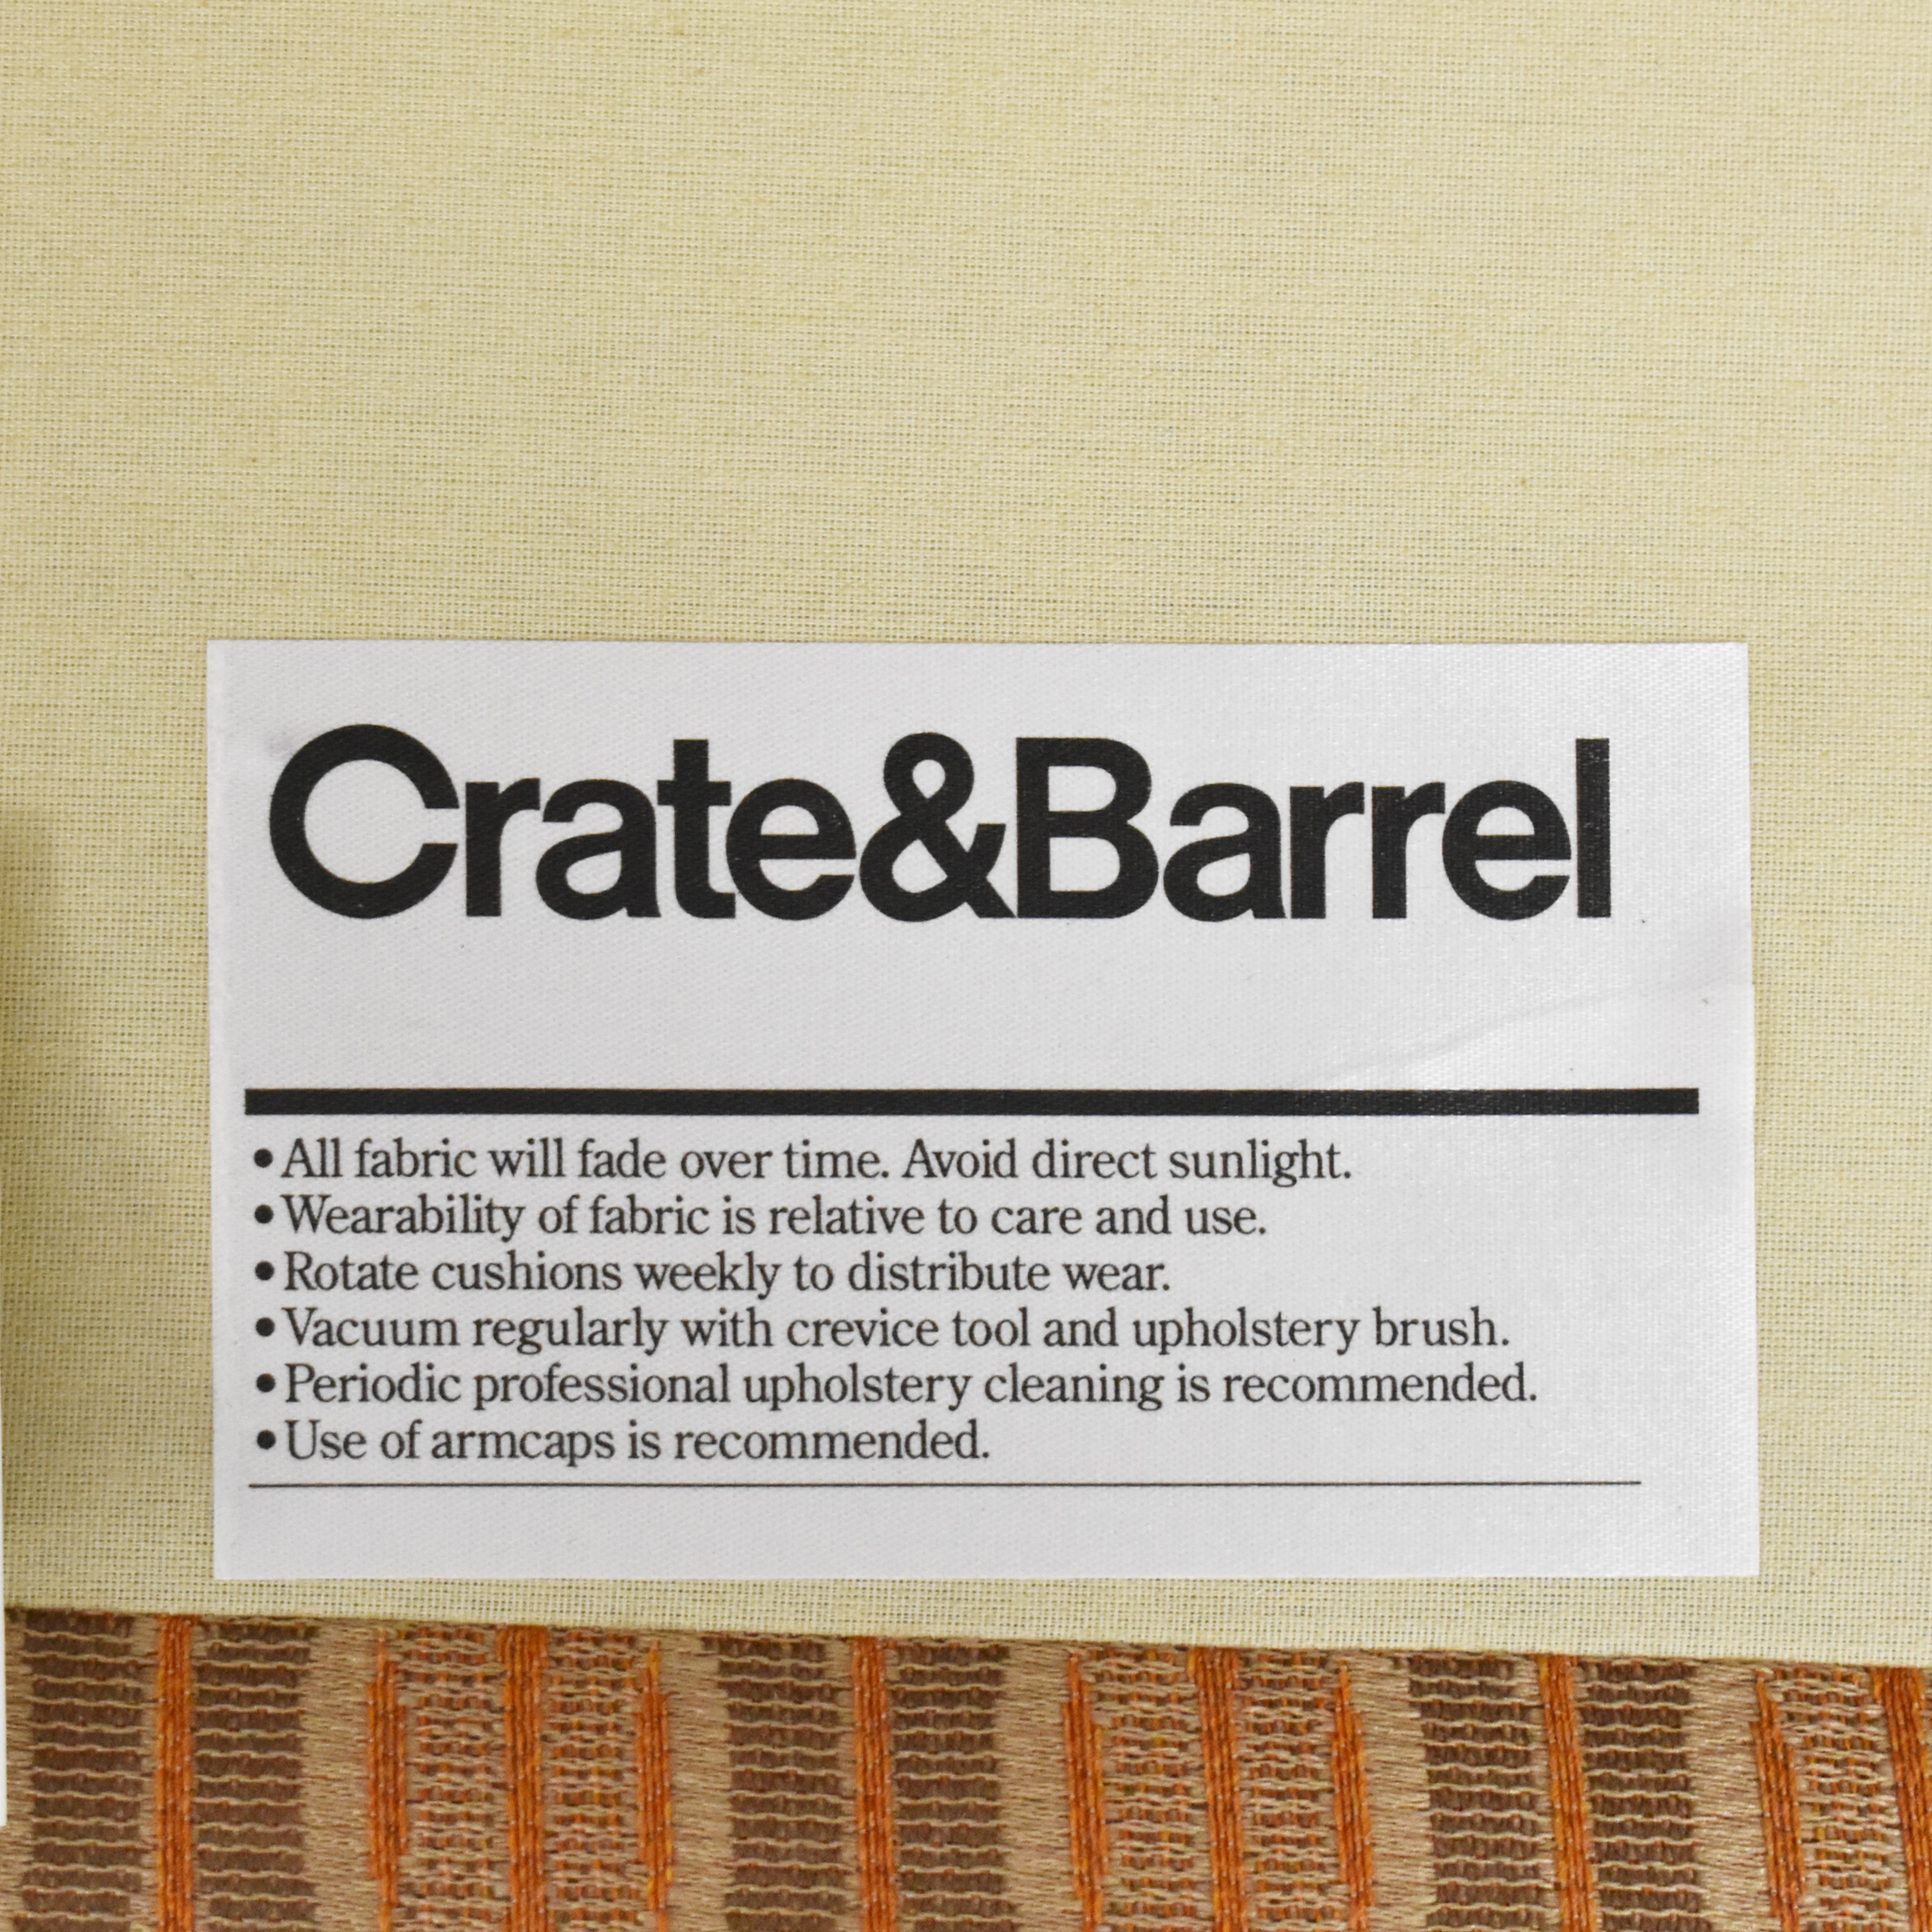 buy Crate & Barrel Chaise Lounge Crate & Barrel Chaises